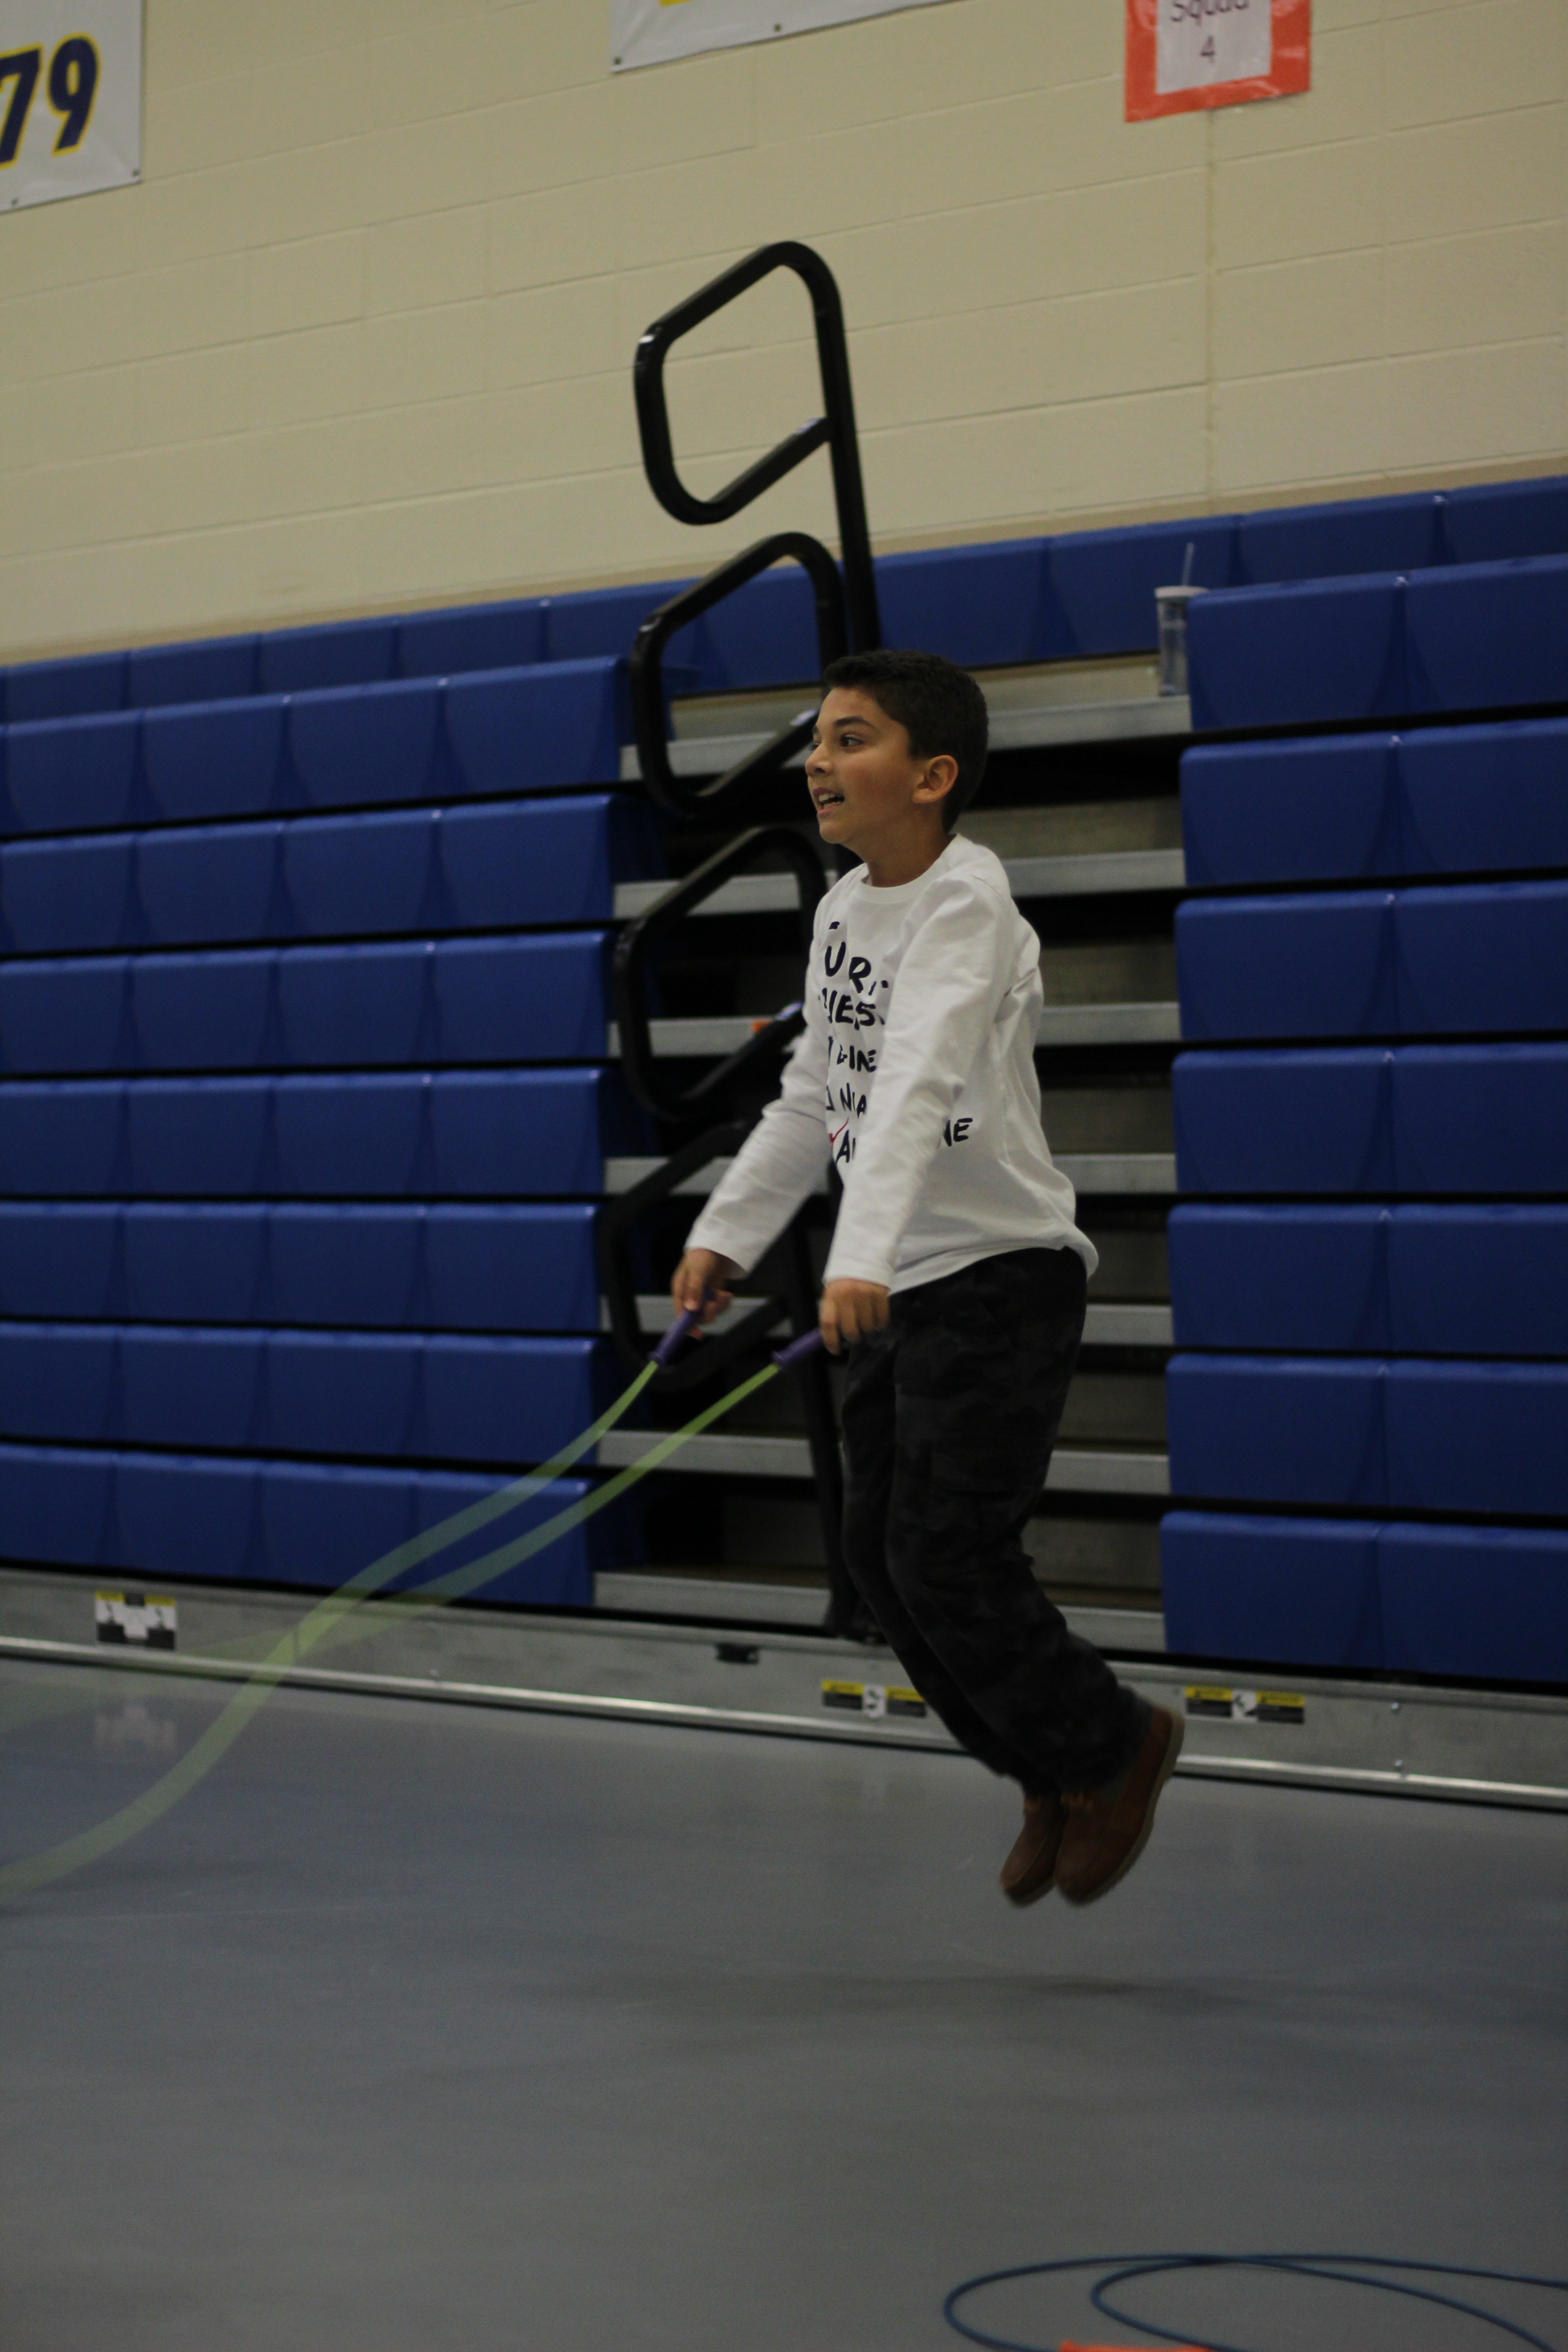 A student jumps rope